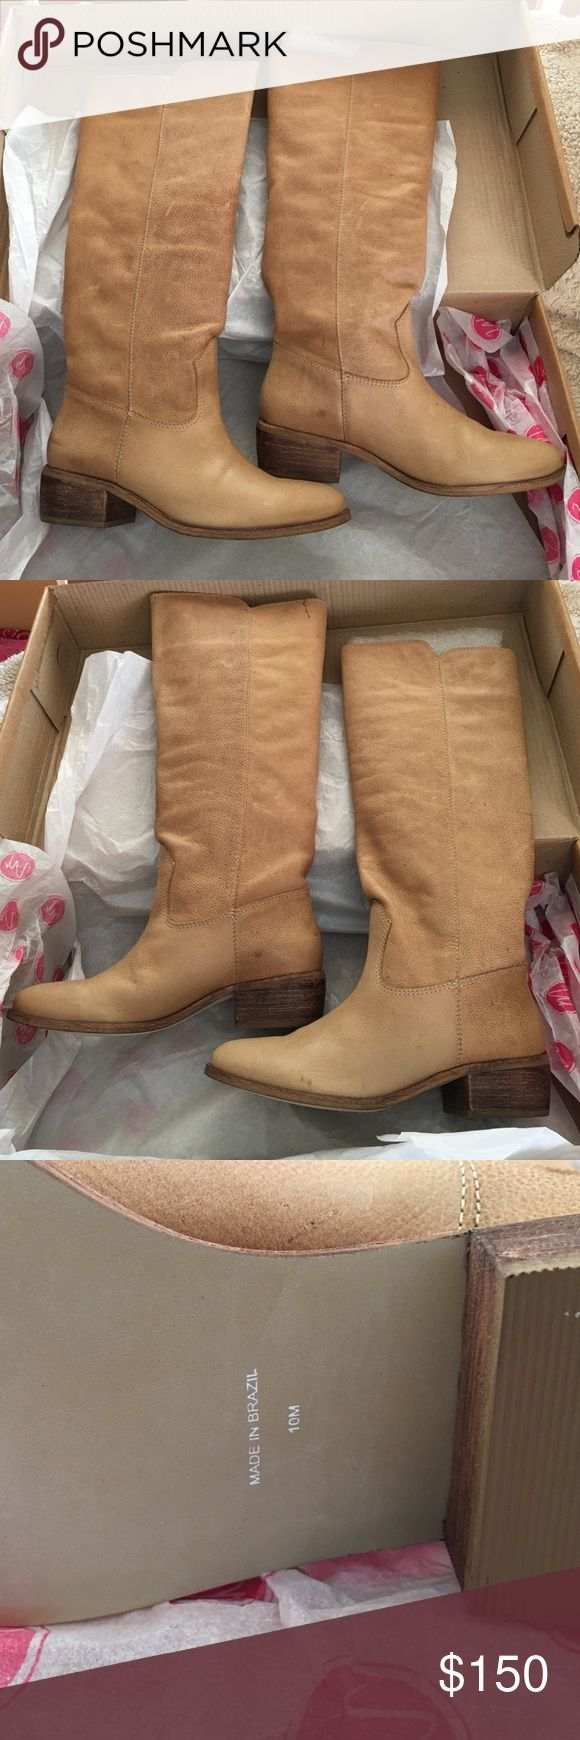 Matisse Gilbert OTK Natural Tan Leather Boots 10M Brand new never been worn Matisse Gilbert OTK Boots in natural tan leather size 10.  There is nothing wrong with them just not want I wanted.  Nonsmoking home & open to offers.  Paid retail $ 265 for these. Matisse Shoes Over the Knee Boots